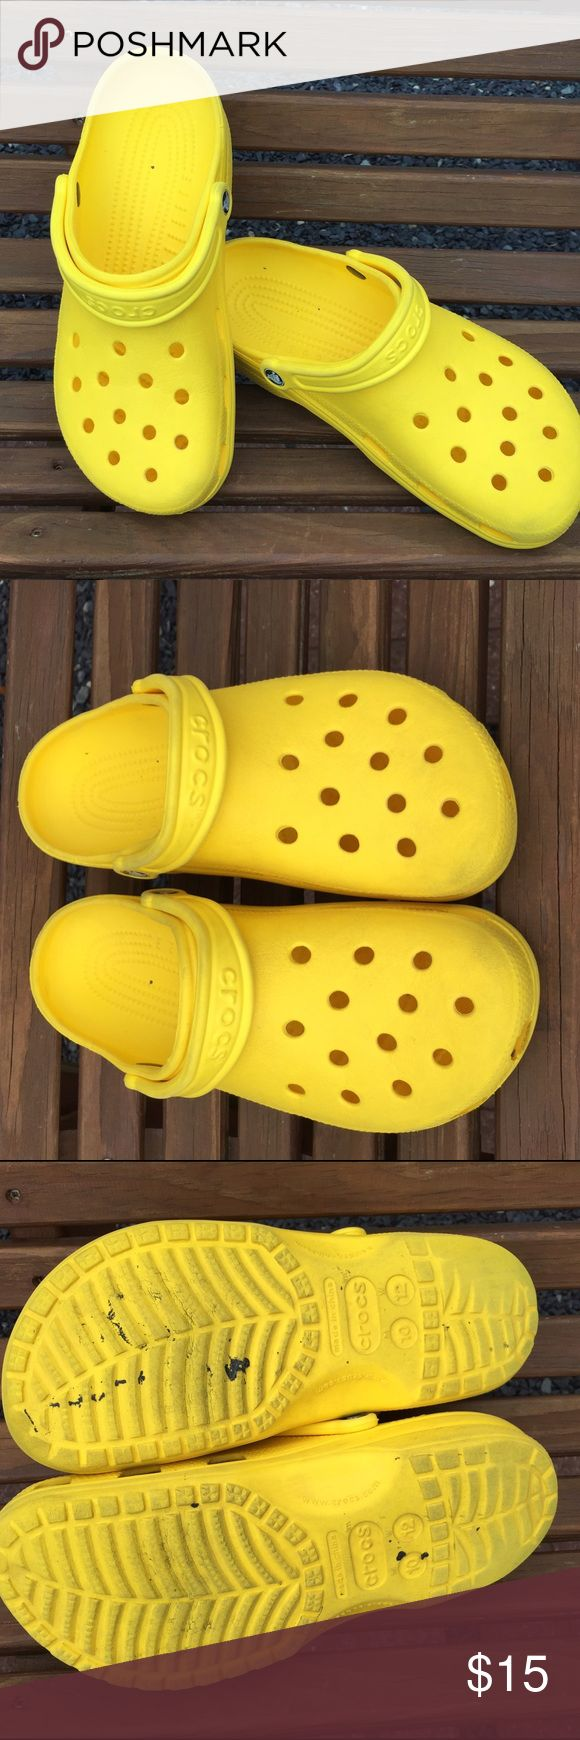 Crocs Yellow Closed Tow Sandals Shoes W12 M10 Size women's 12 or Mens 10. Still a ton of life in them. CROCS Shoes Sandals